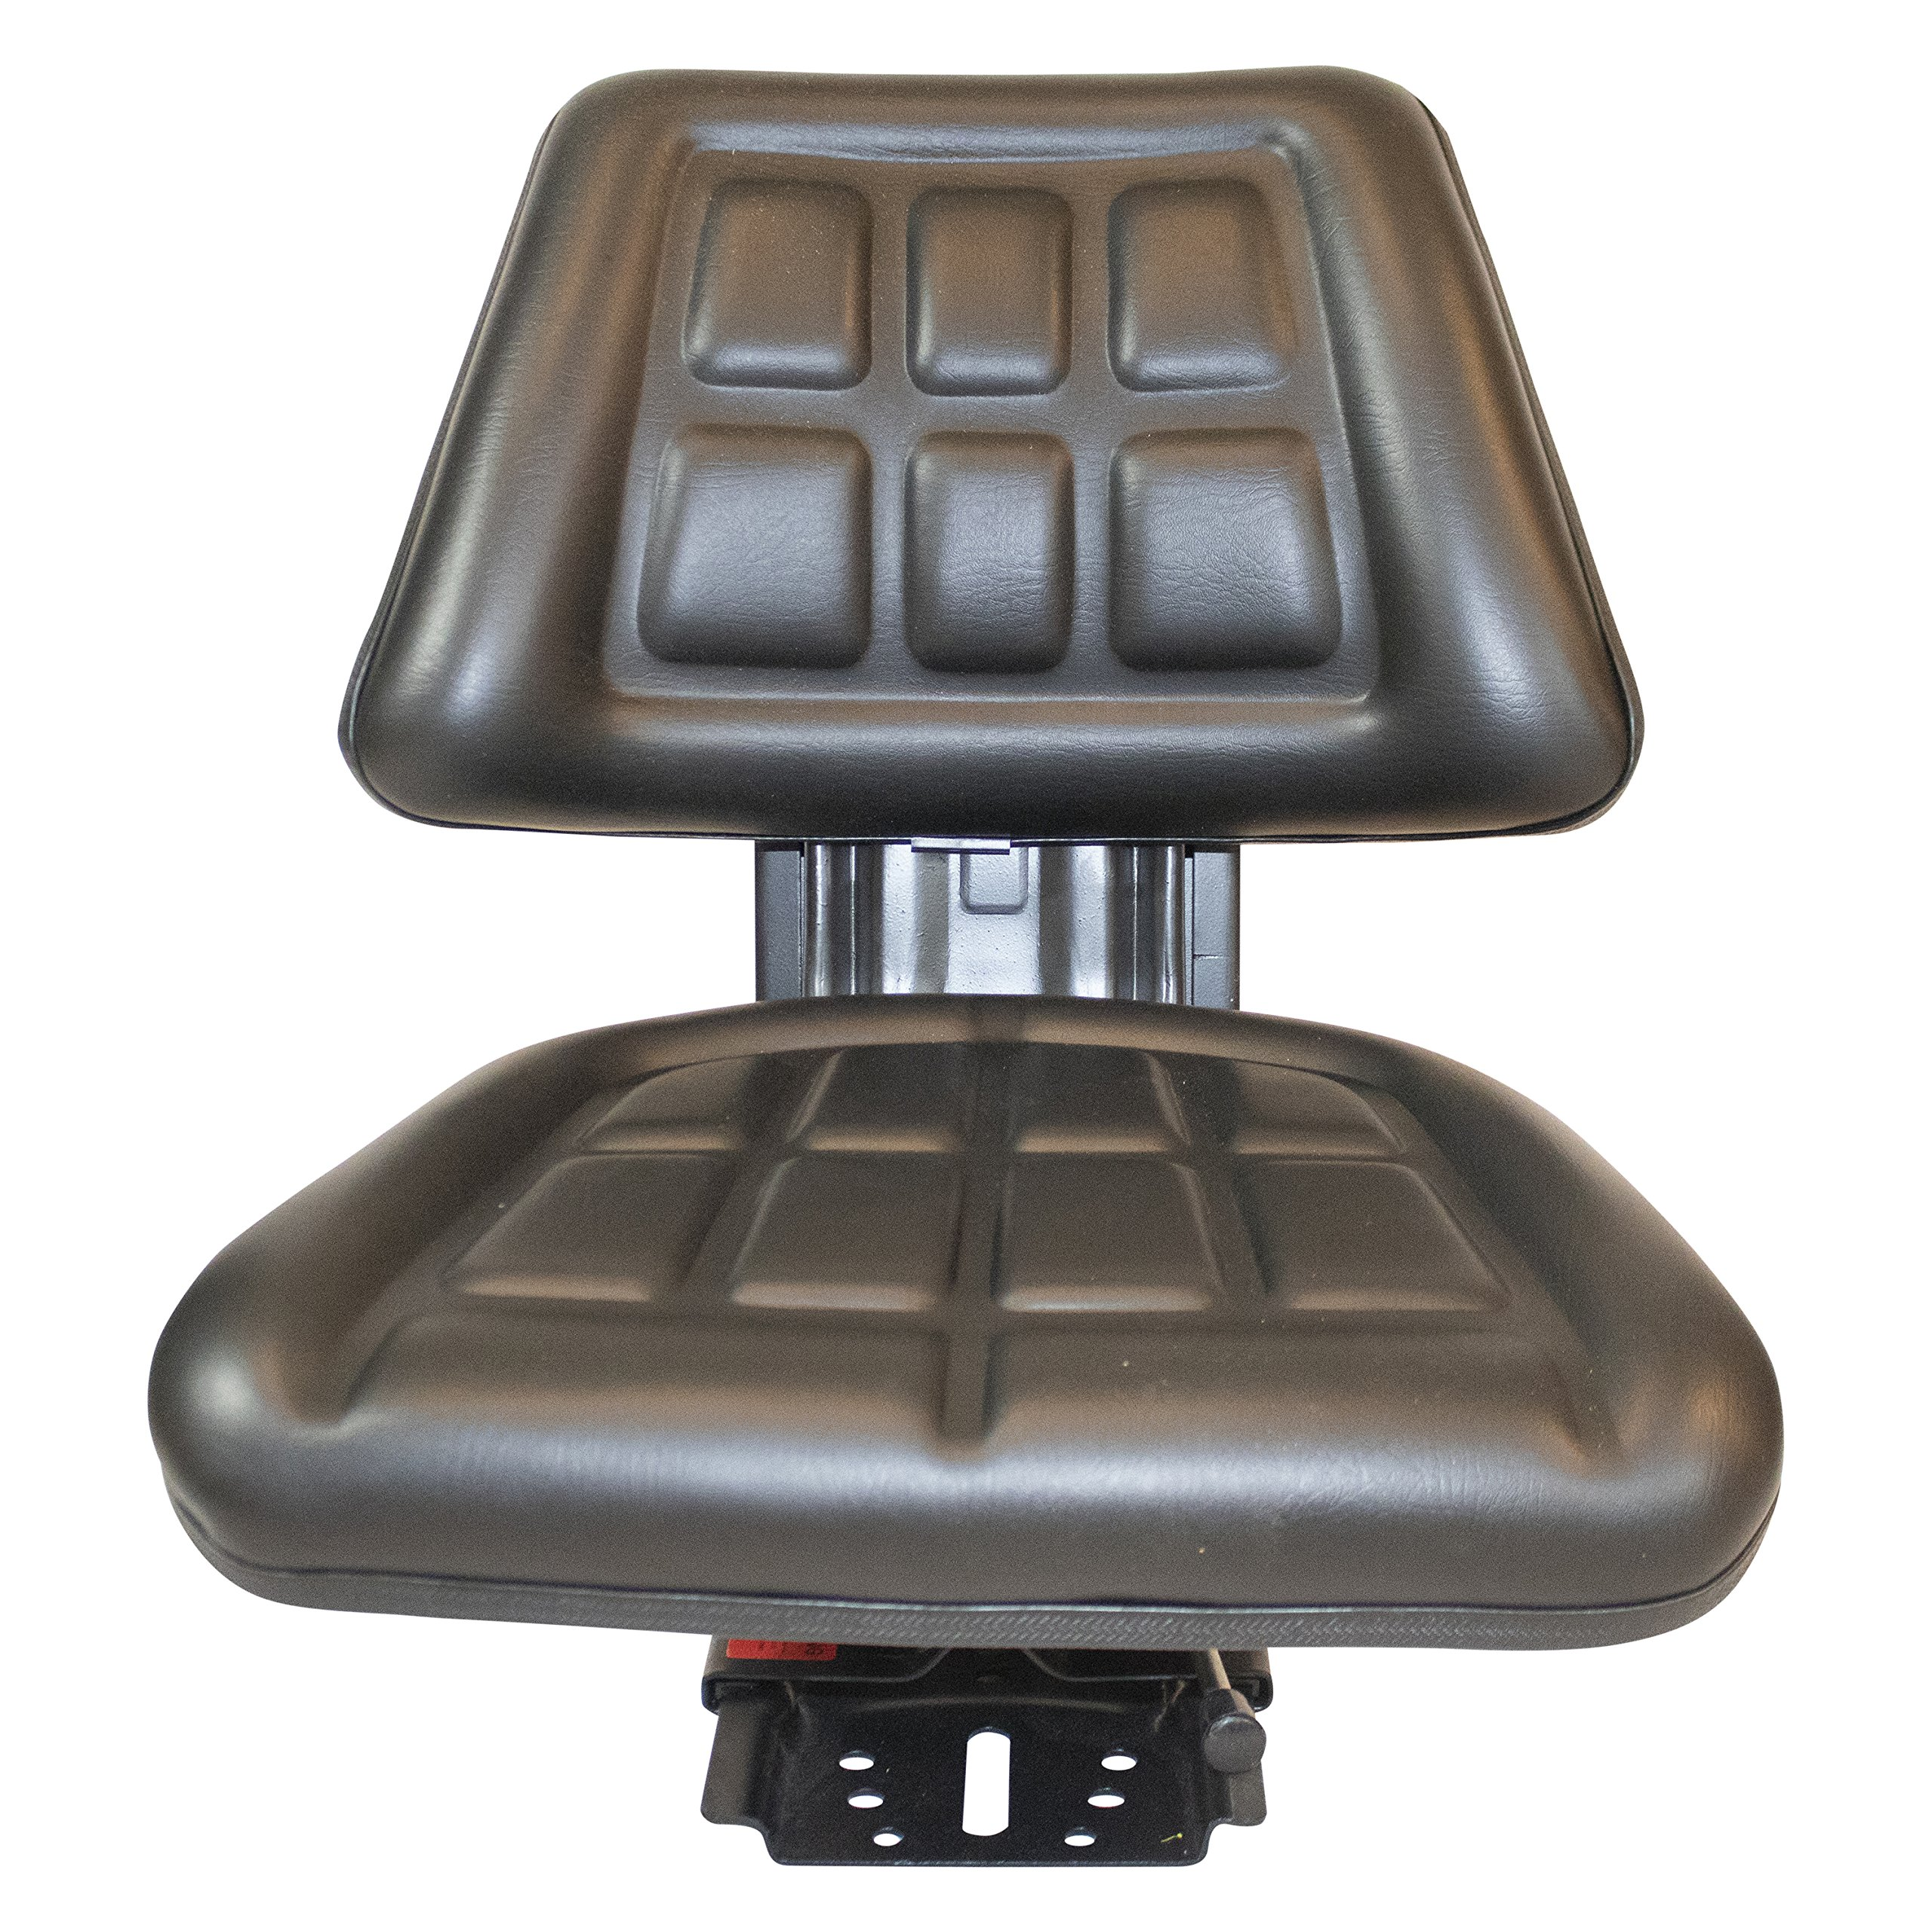 Black TRIBACK Suspension Tractor SEAT FITS Ford/New Holland 2000 2310 2600 2610 2810 2910 TRAC Brand(Same Day Shipping - Delivers in 1-4 Business Days)